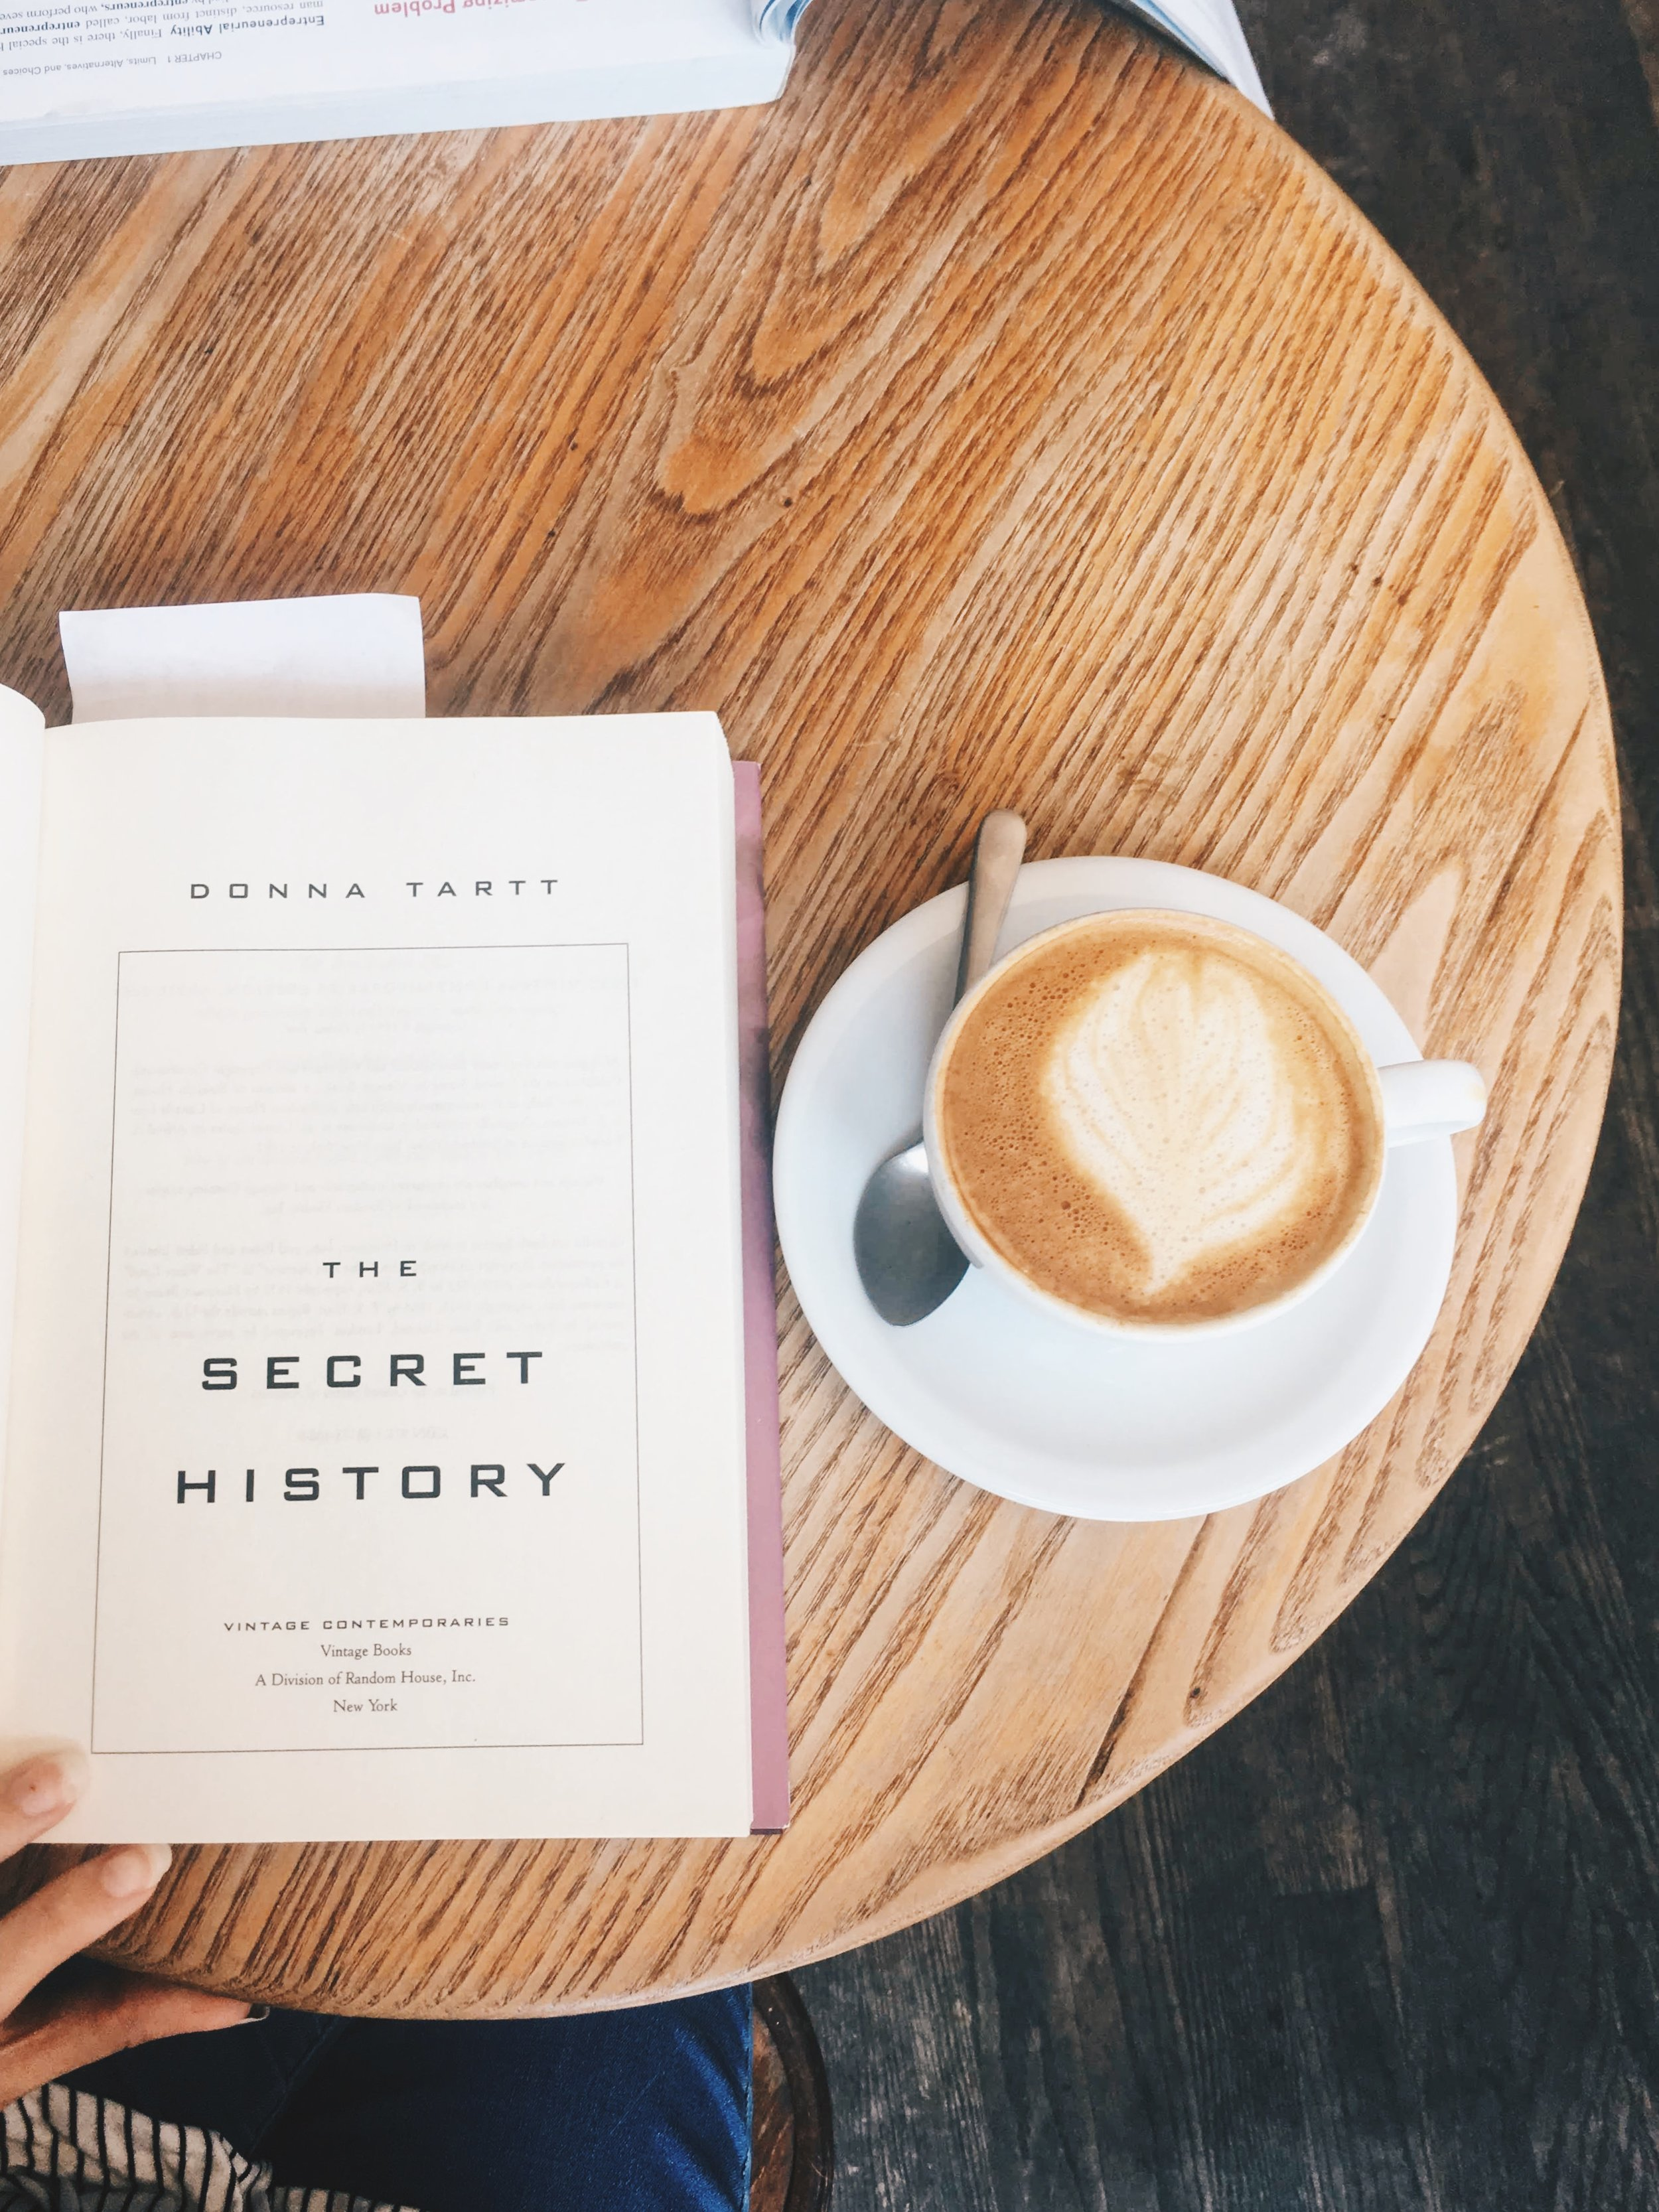 The Attic On Eighth Summer Reads M A McCuen The Secret History Coffee.jpg